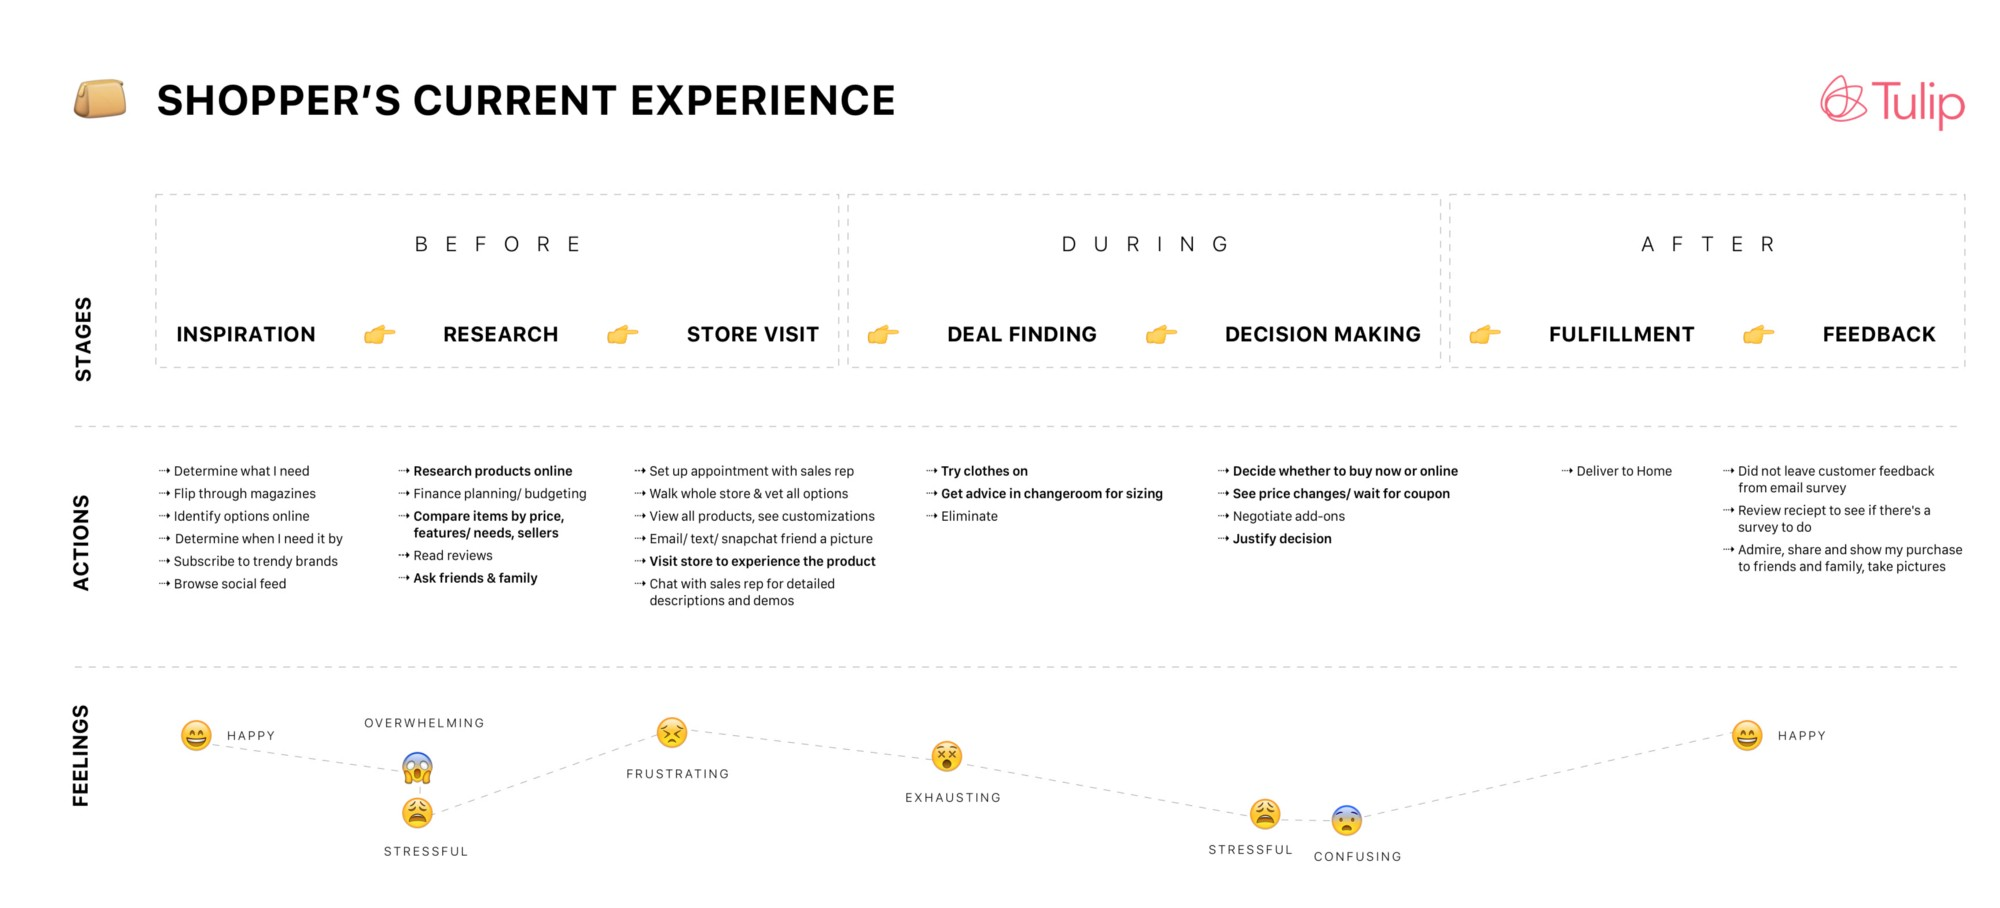 Known Knowns Using Journey Mapping To Tell The Future Of Retail Story - Shopper journey map